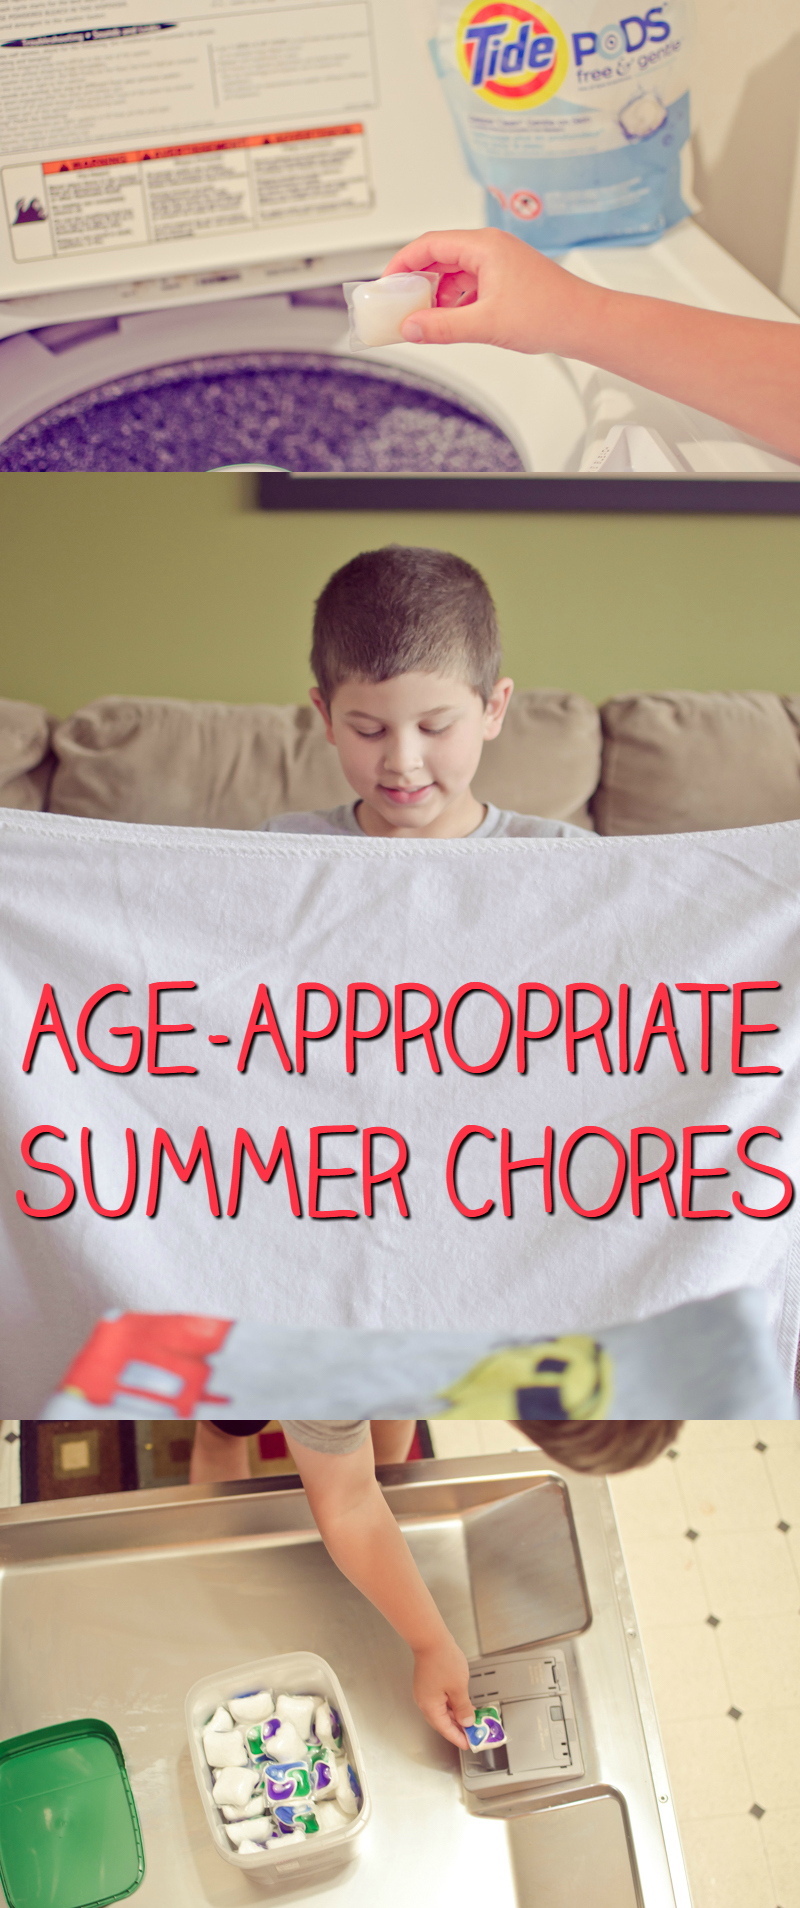 age-appropriate summer chores